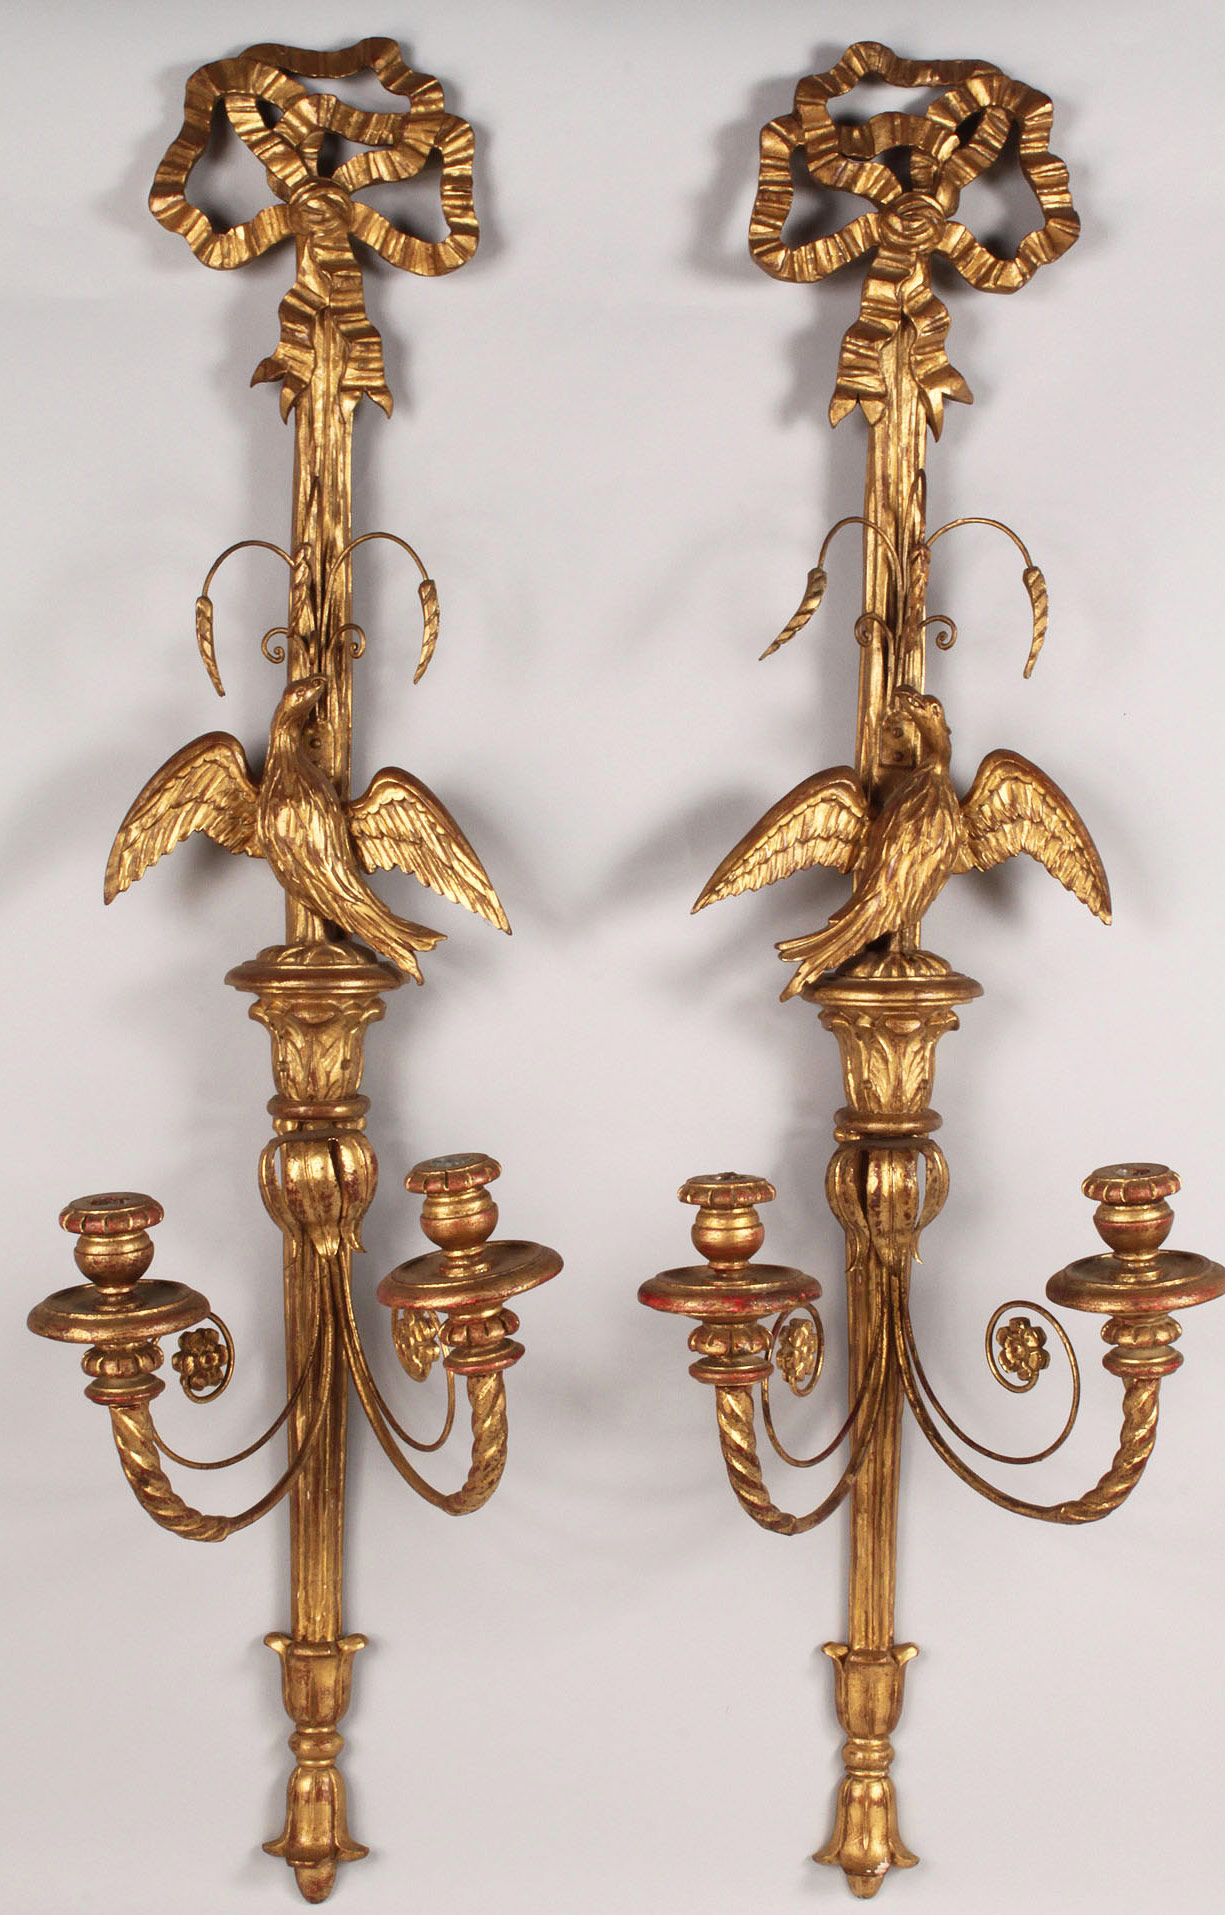 183: Pair of Italian Giltwood sconces